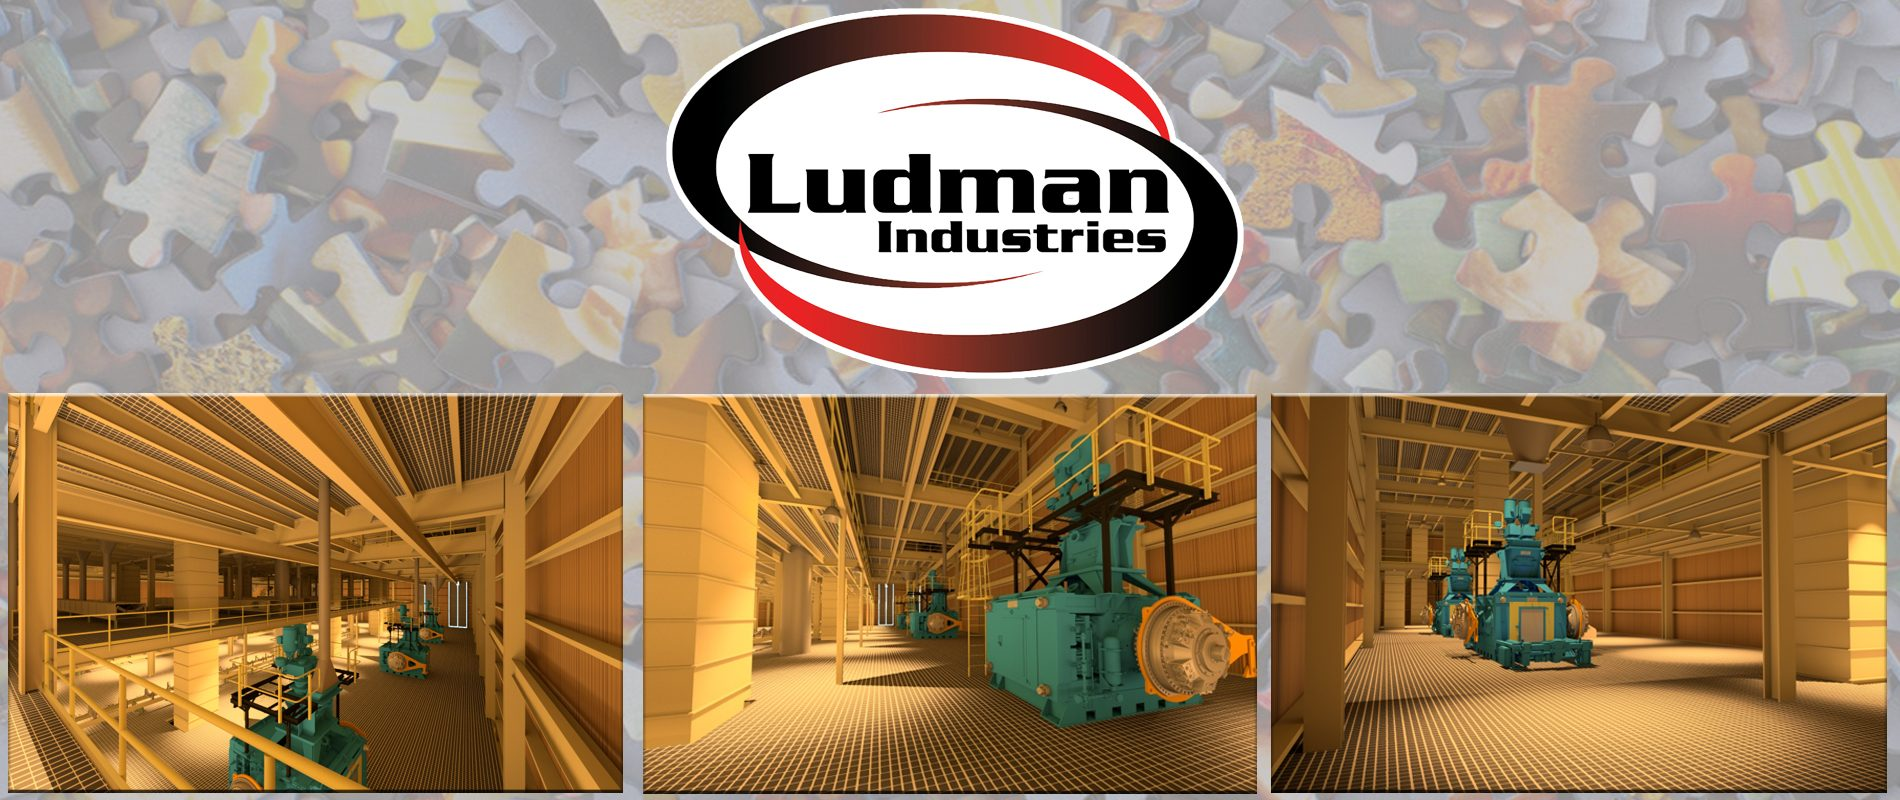 Ludman Industries Complete Process Solutions - Turnkey Systems